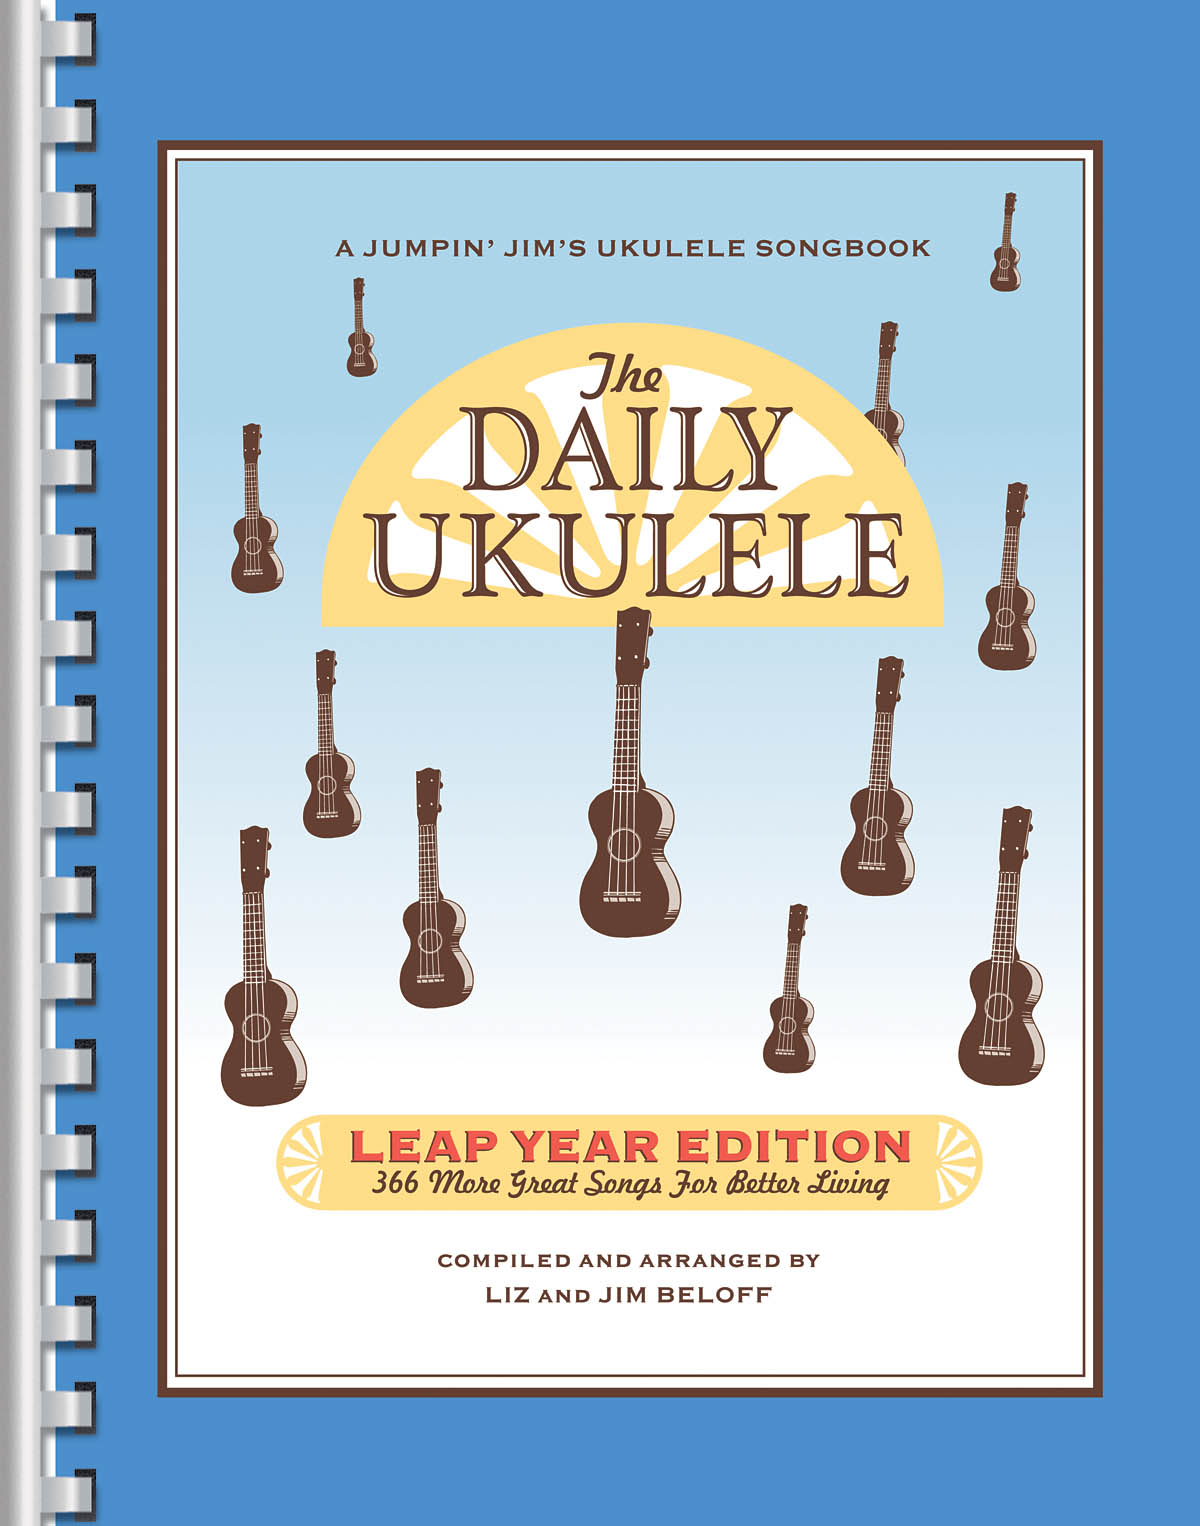 The Daily Ukulele – Leap Year Edition: Vocal and Guitar: Mixed Songbook